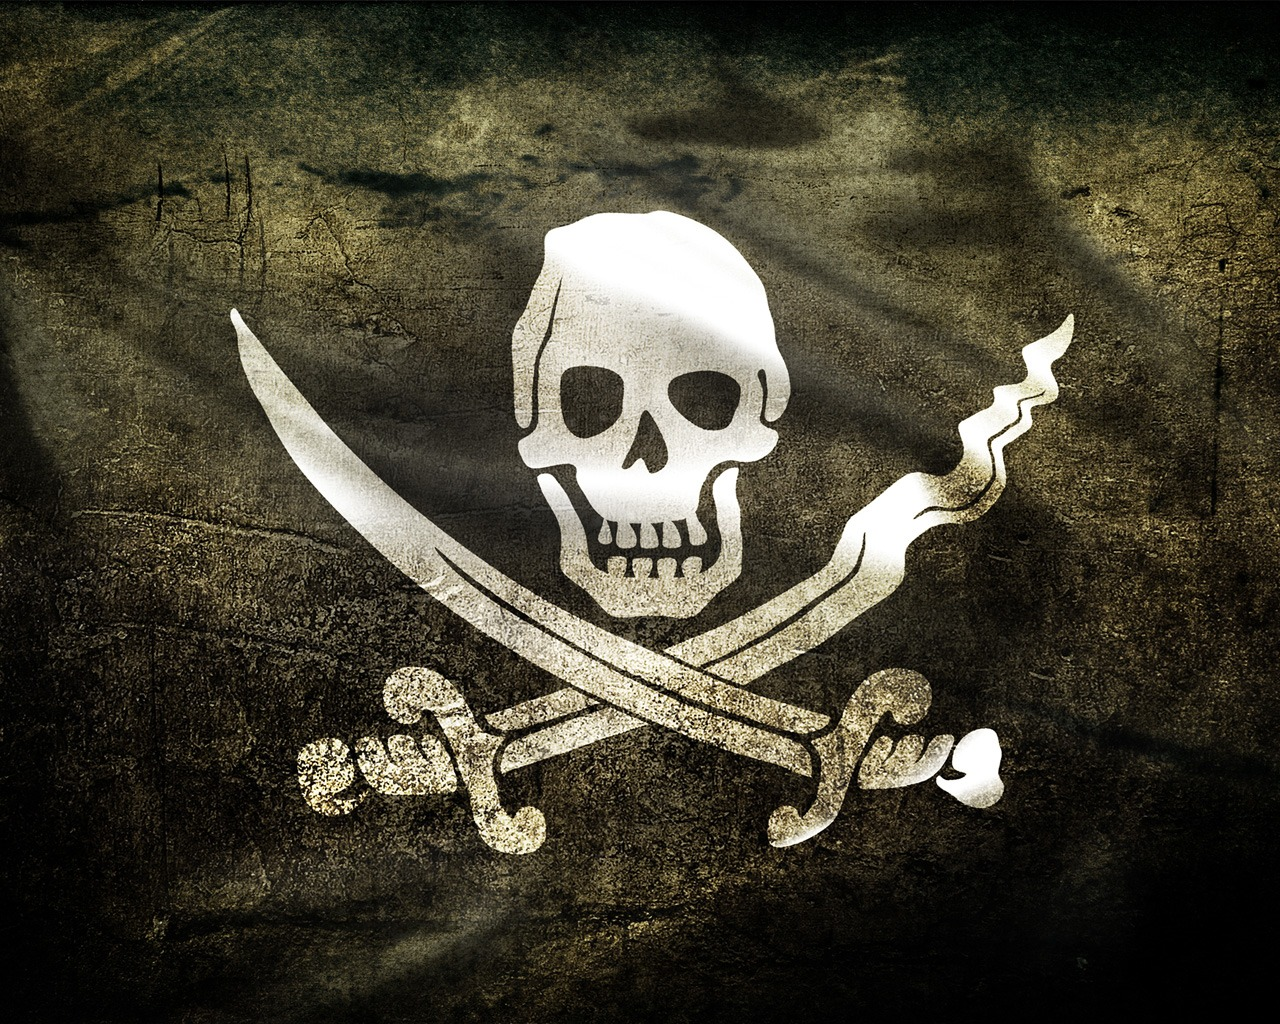 Pirate Flag Wallpaper Miscellaneous Other Wallpapers in ...